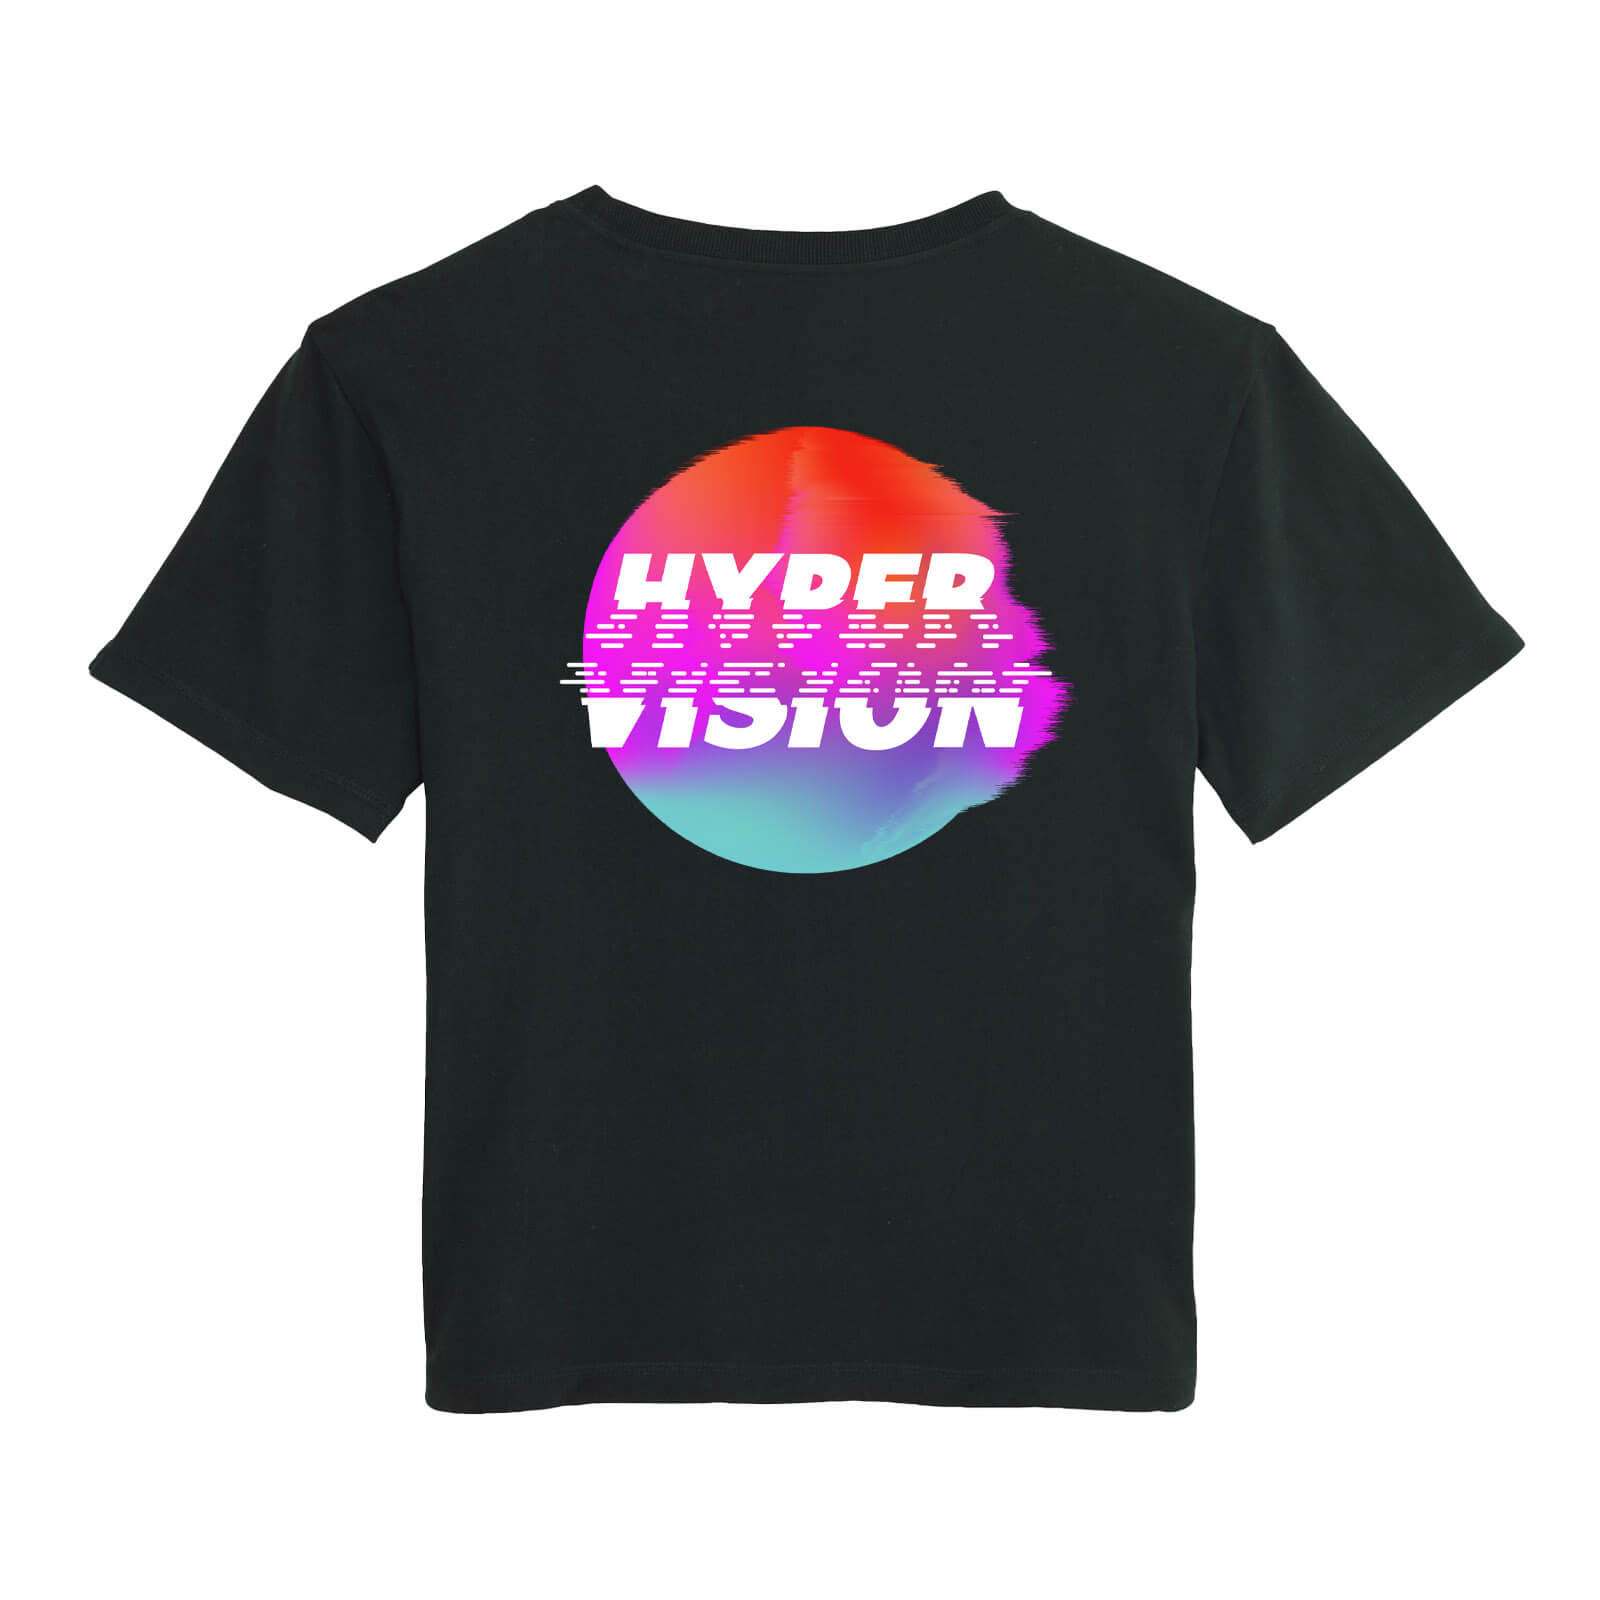 UKF Hyper Vision Women's T-shirt (Black)